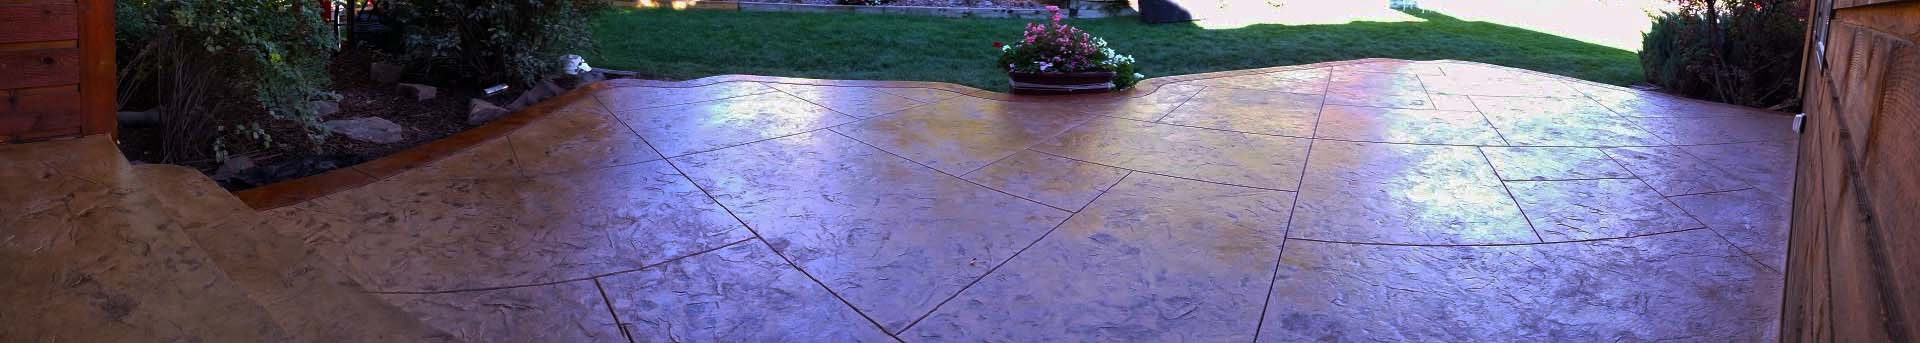 Stamped concrete patio, stamp style is a slate skin stamp with release cuts every 4 3' the smaller cuts are about 18